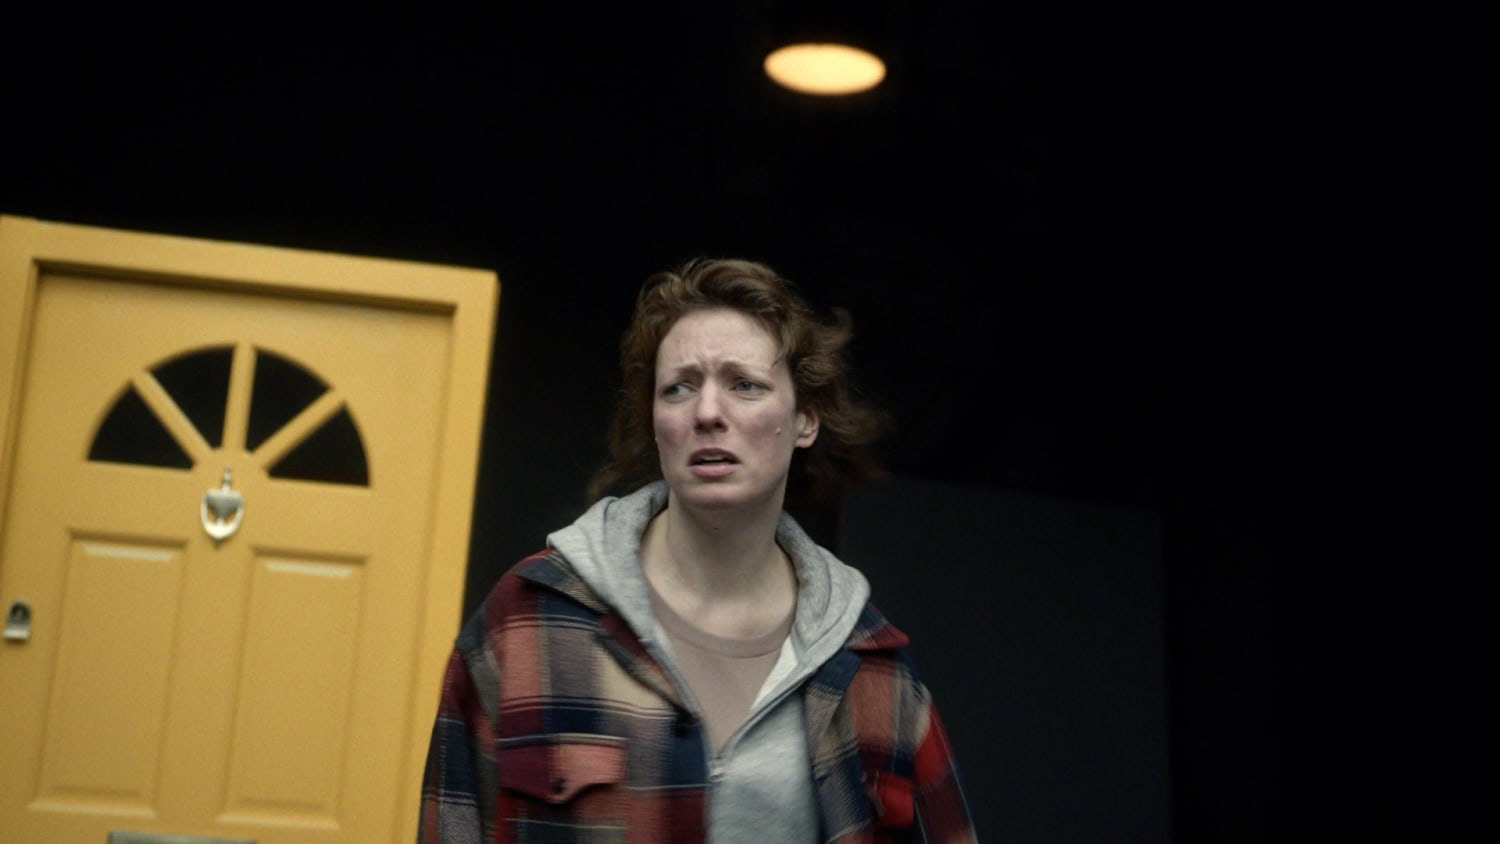 Woman in distress in front of a yellow door